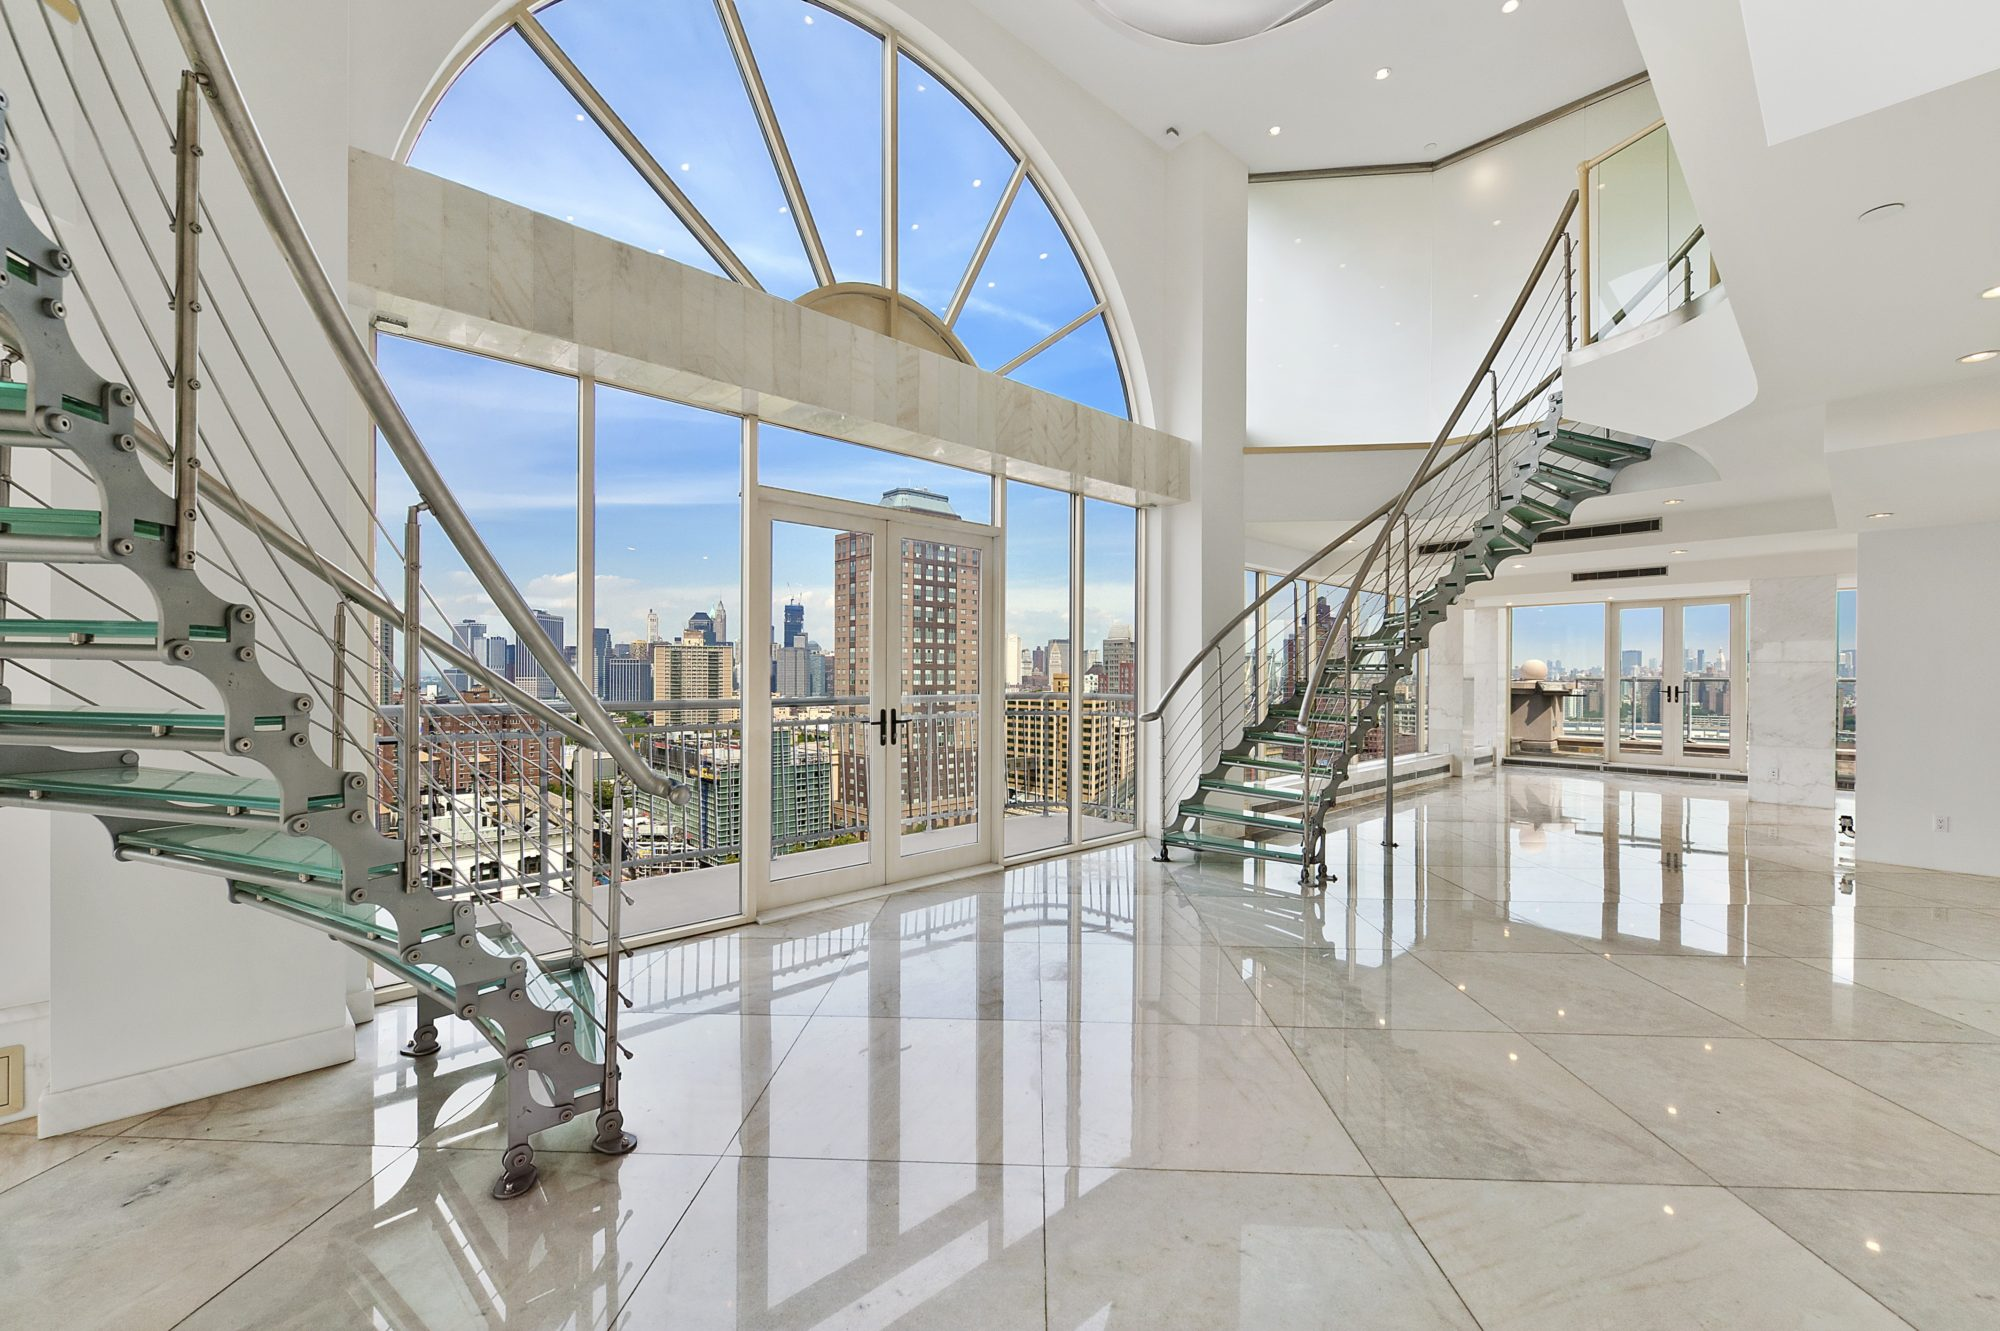 Home Saint Louis Foyer Unme : Magnificent duplex penthouse in brooklyn